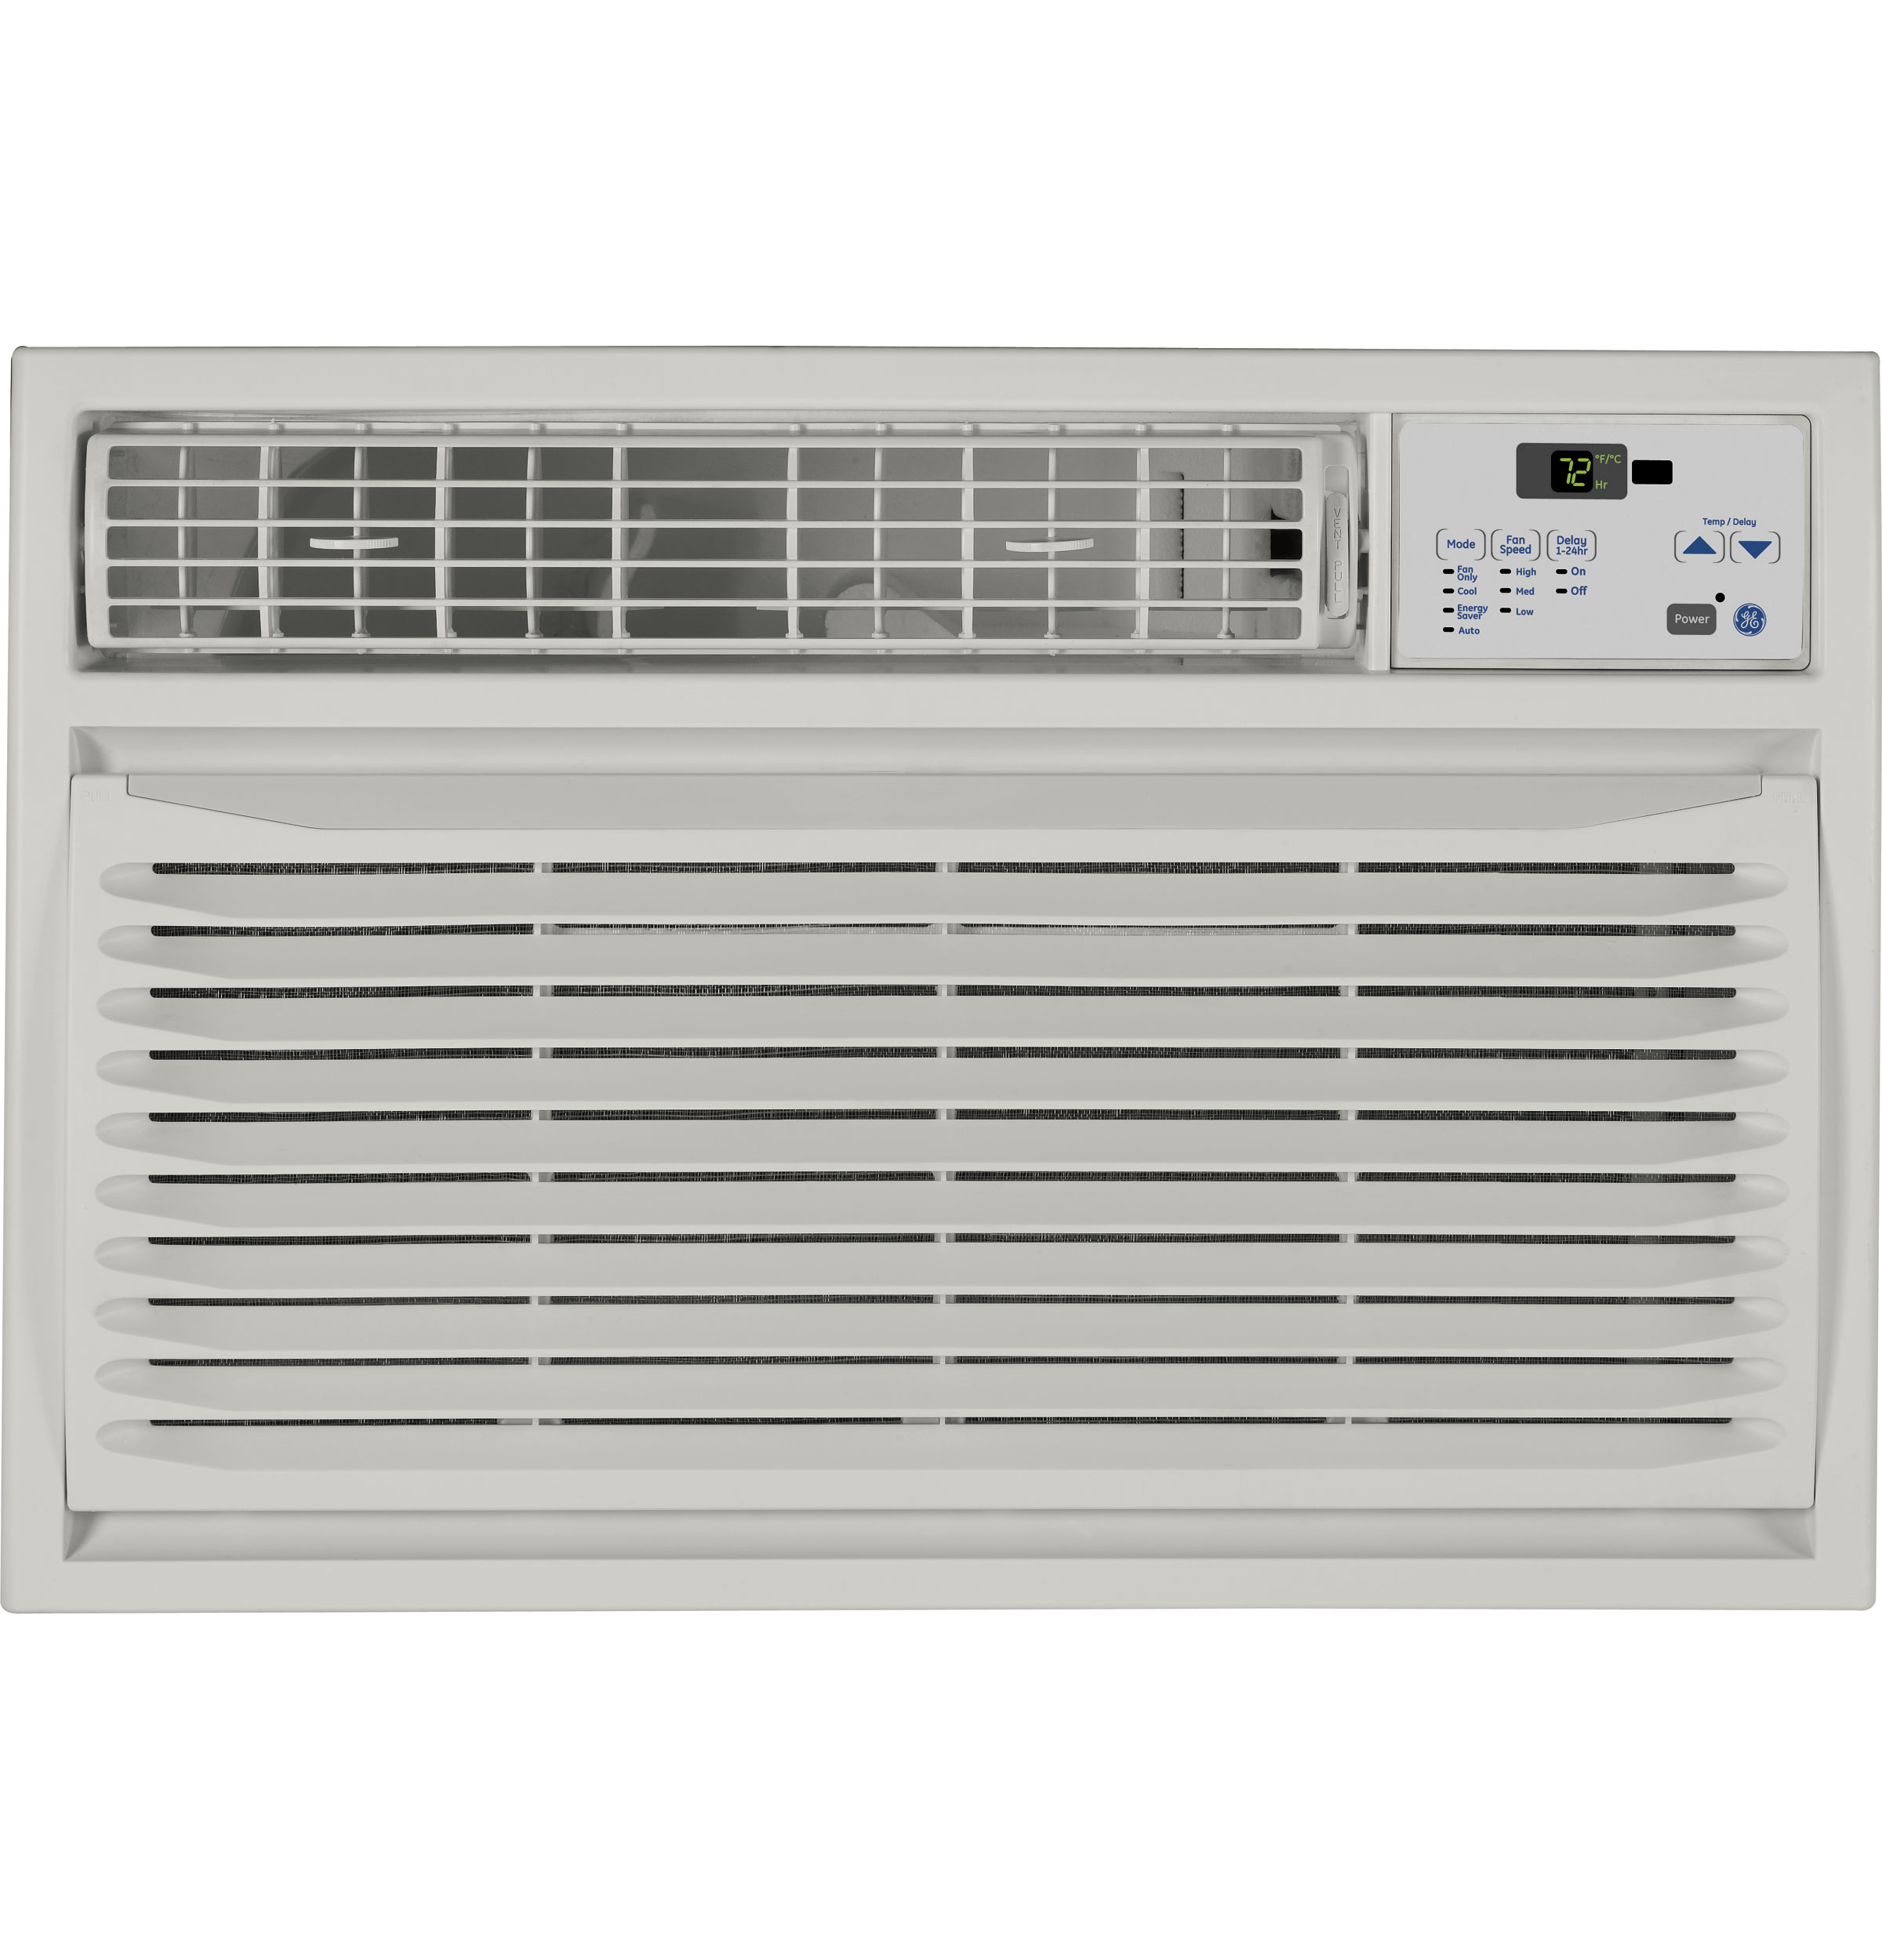 230/208 Volt Electronic Room Air Conditioner AHM24DP GE Appliances #415C8A